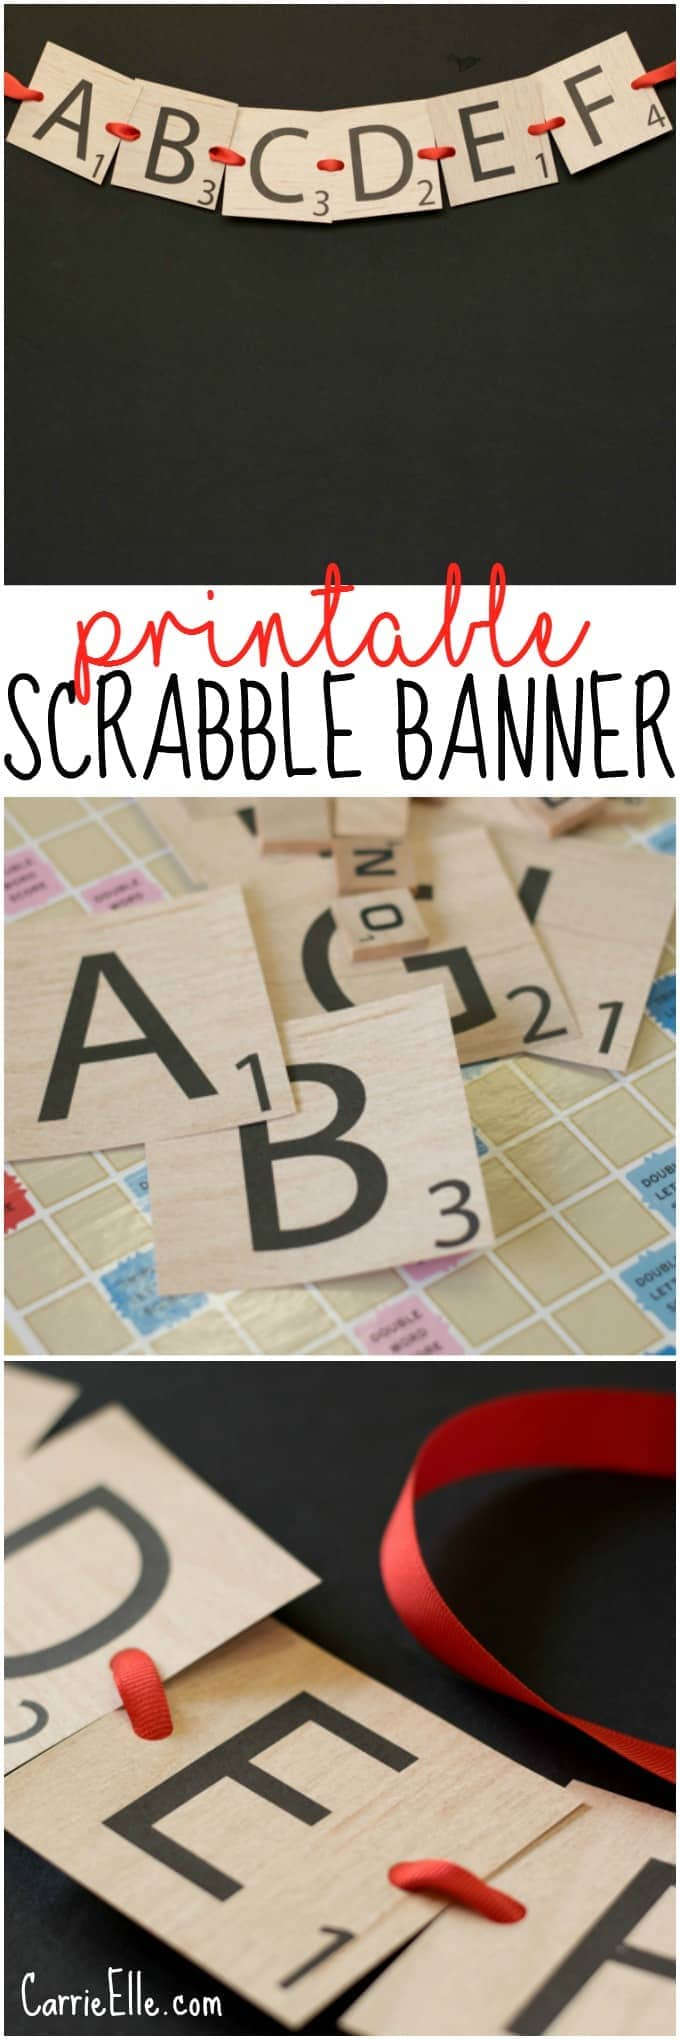 photograph relating to Scrabble Letters Printable identify Scrabble Letter Printable Banner - Carrie Elle